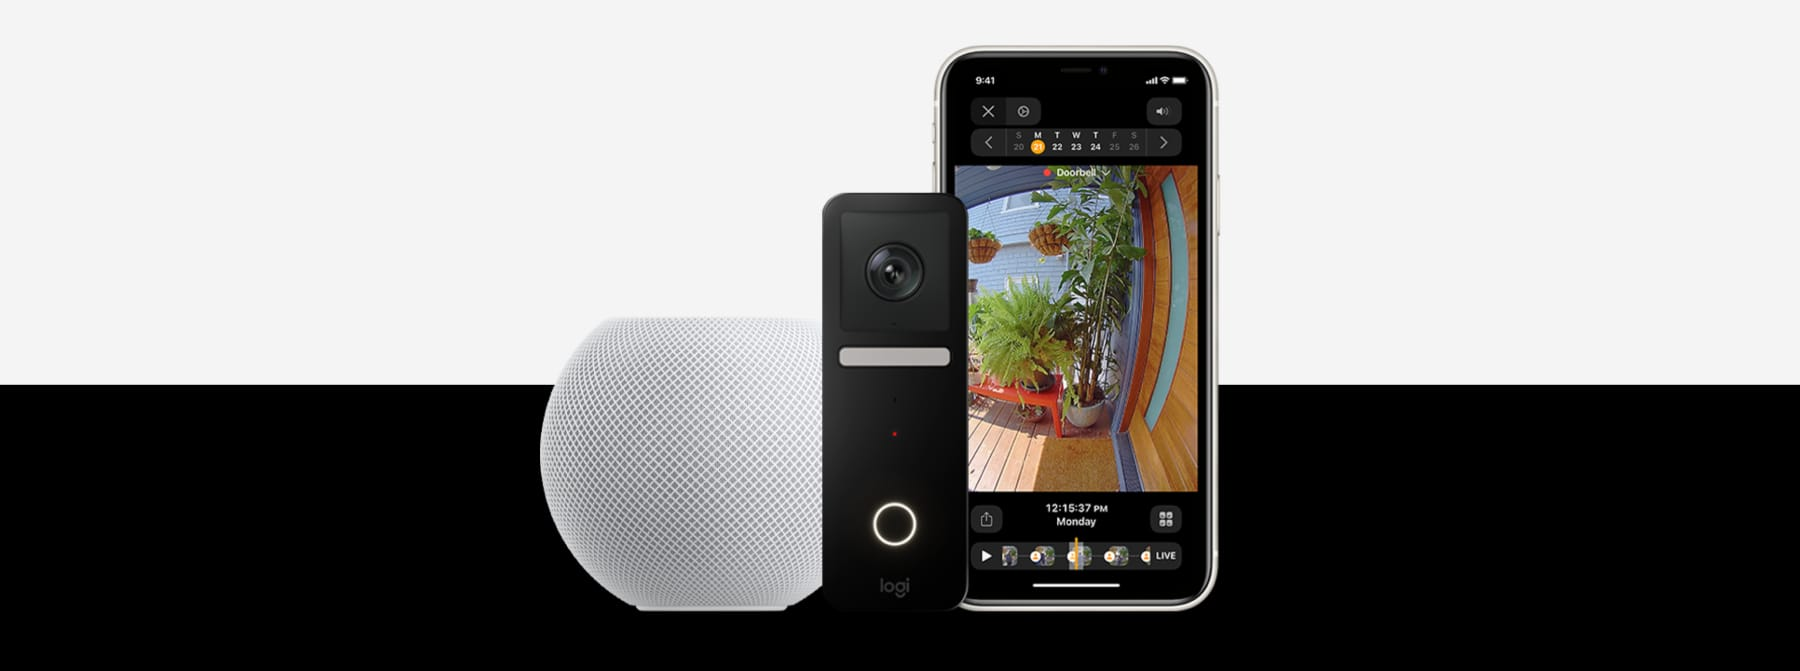 CIRCLE VIEW BUILT WITH HomeKit SECURE VIDEO